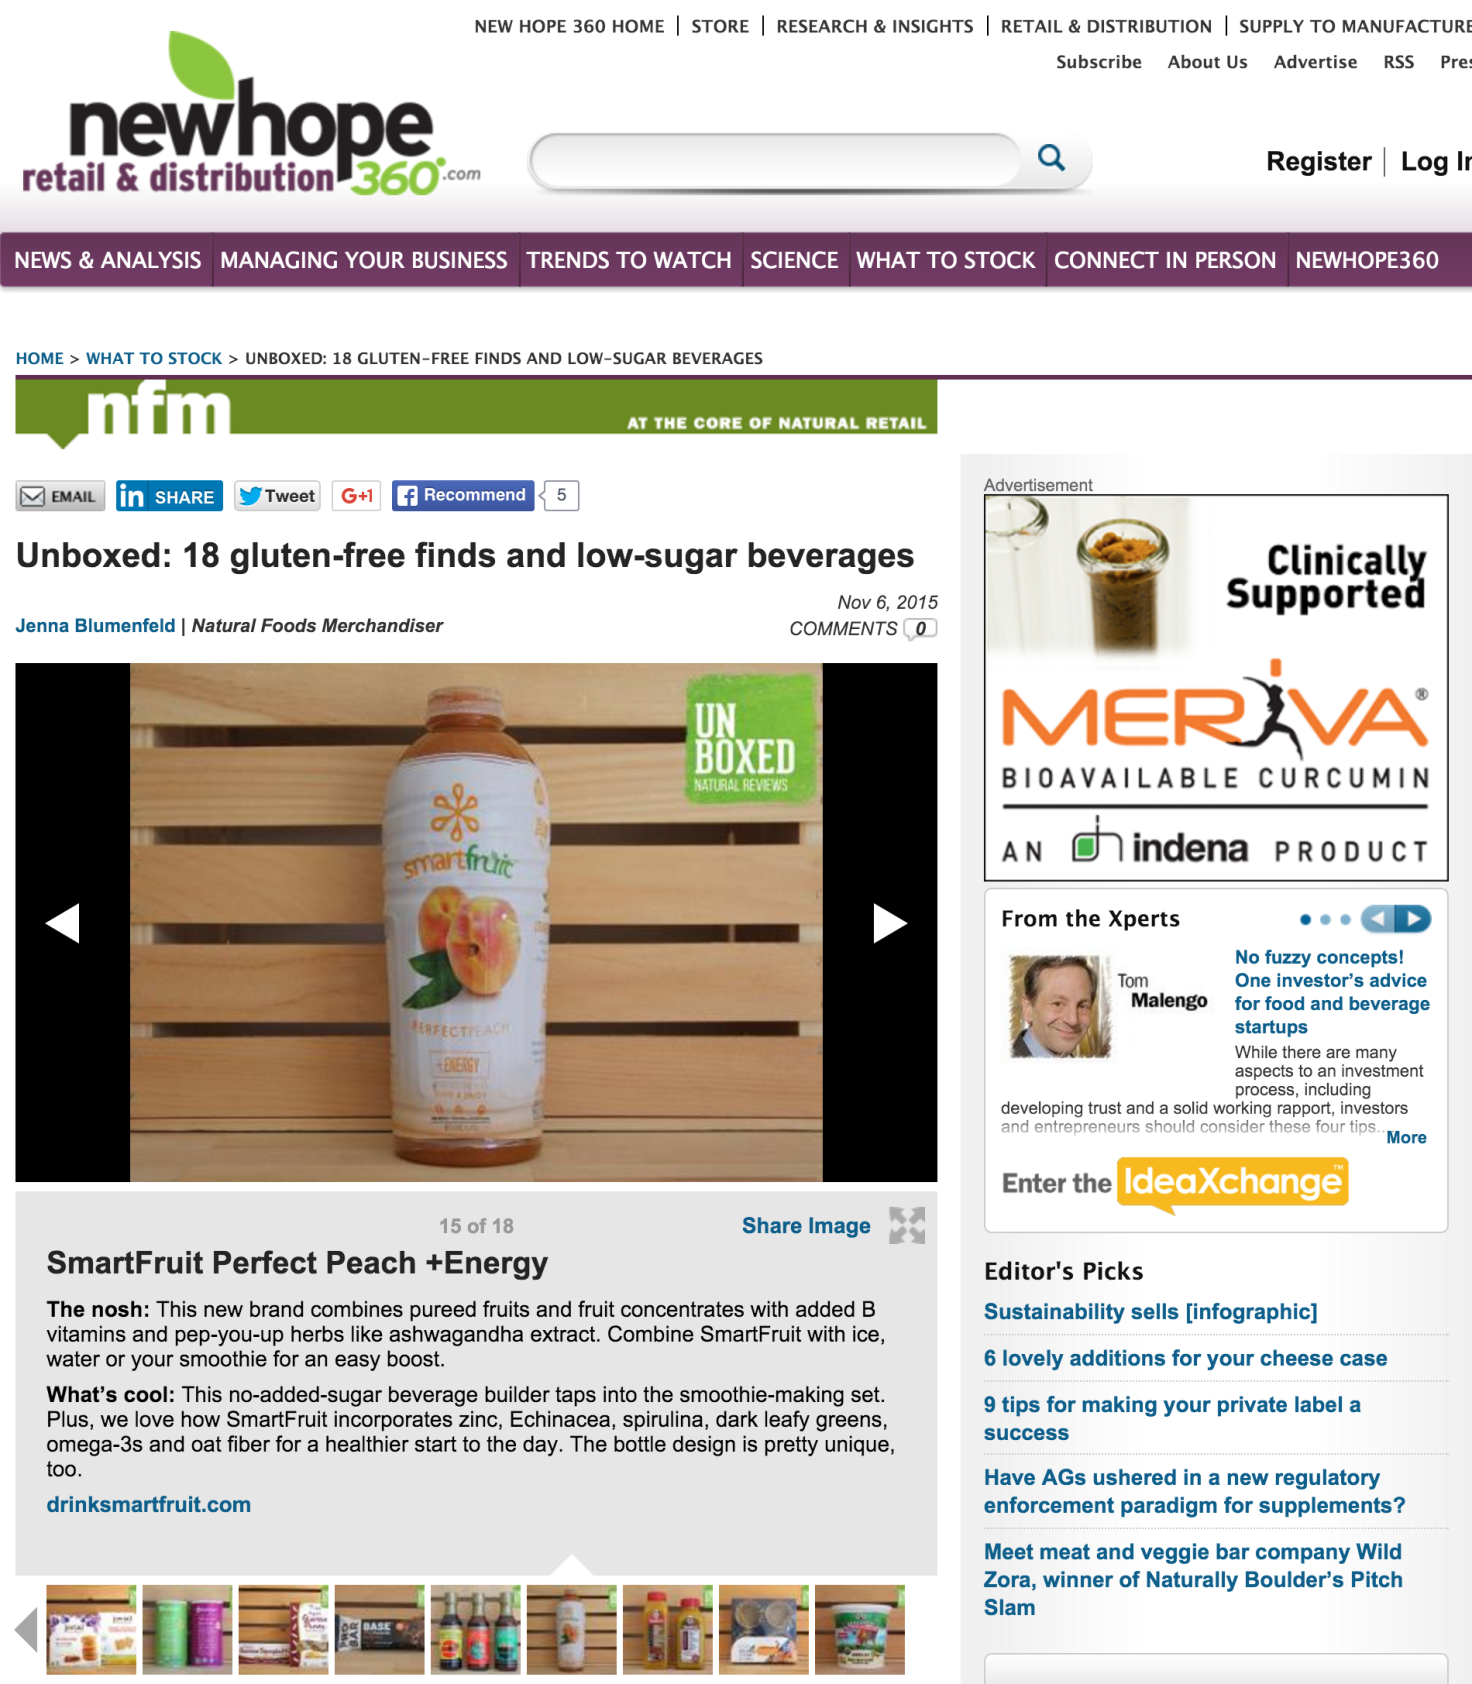 Photo Gallery- Gluten-free foods - Low-sugar beverages - New Hope 360.clipular